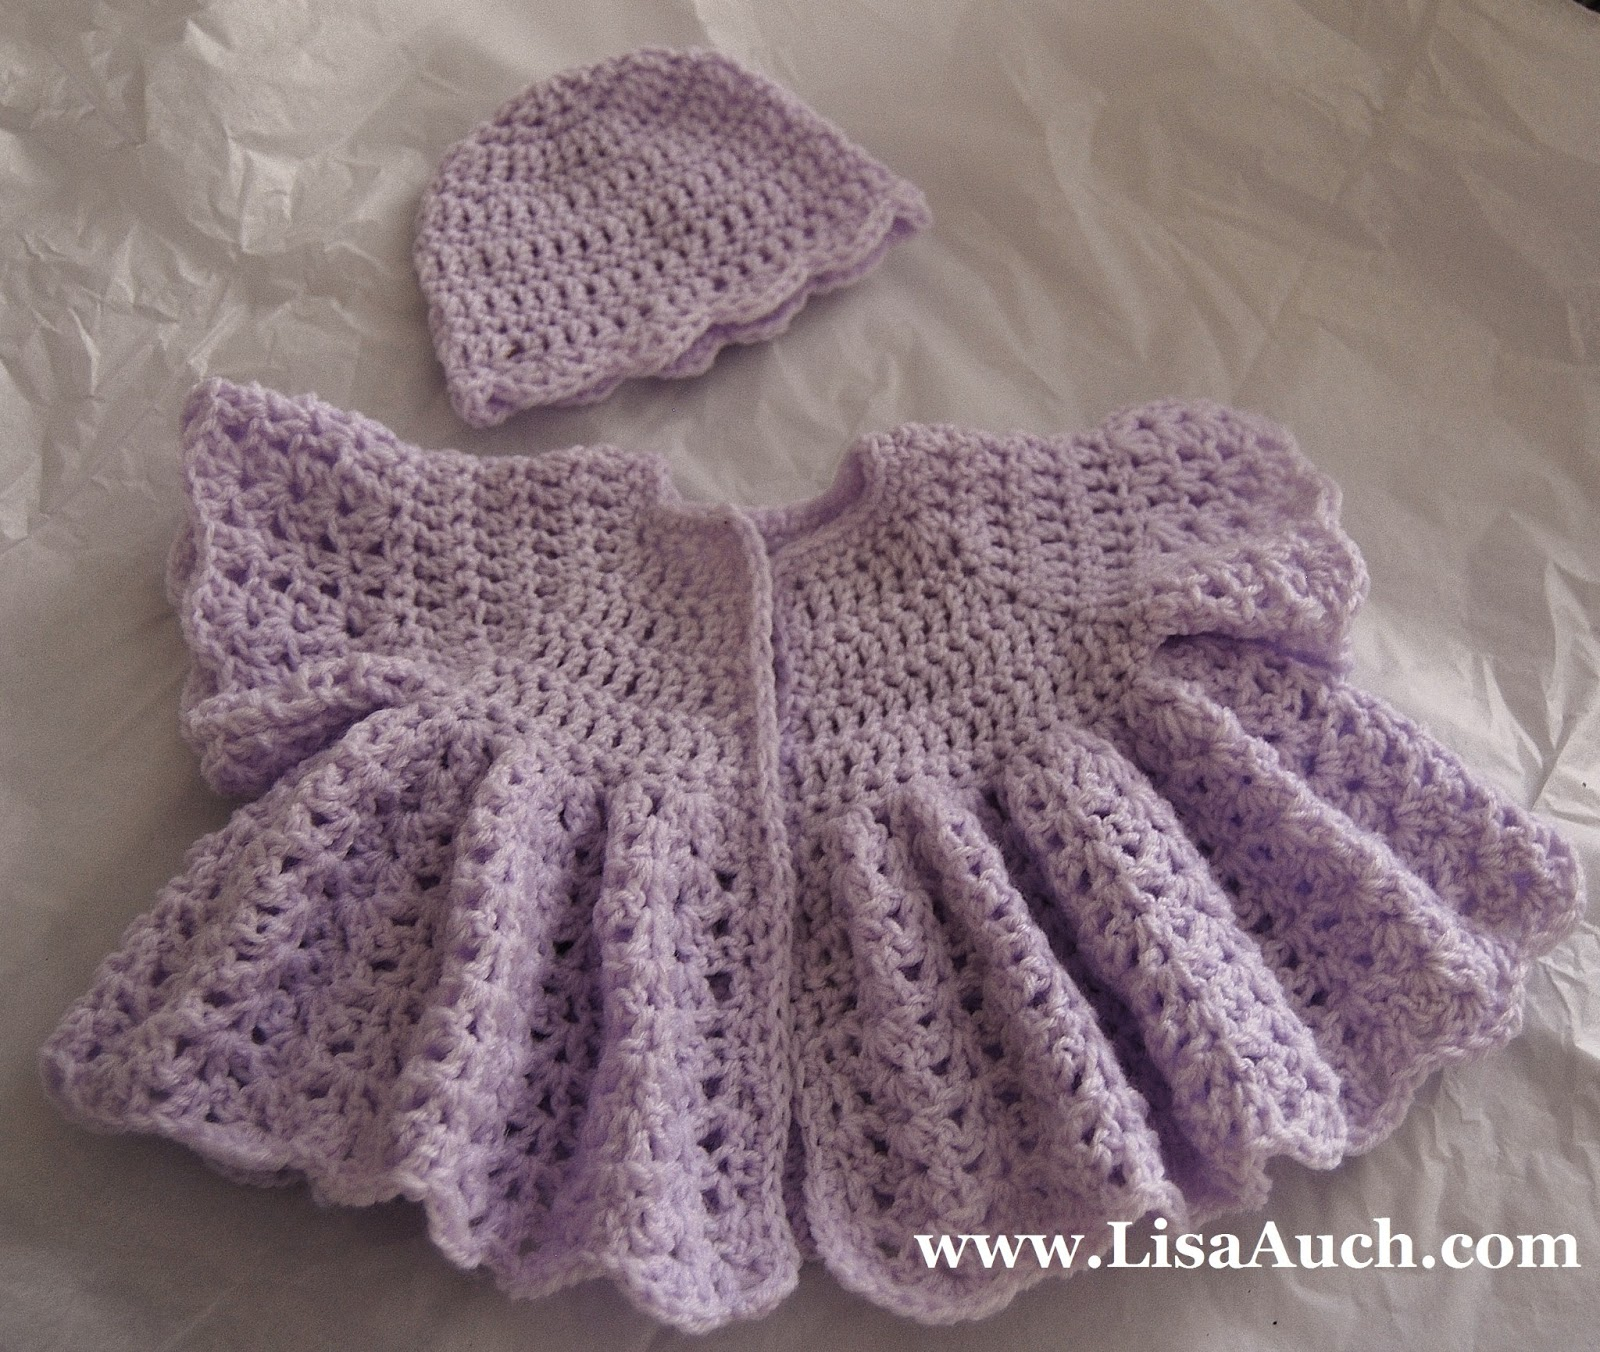 Free Crochet Pattern For A Baby Sweater : Free Crochet Toddler Sweater Patterns images